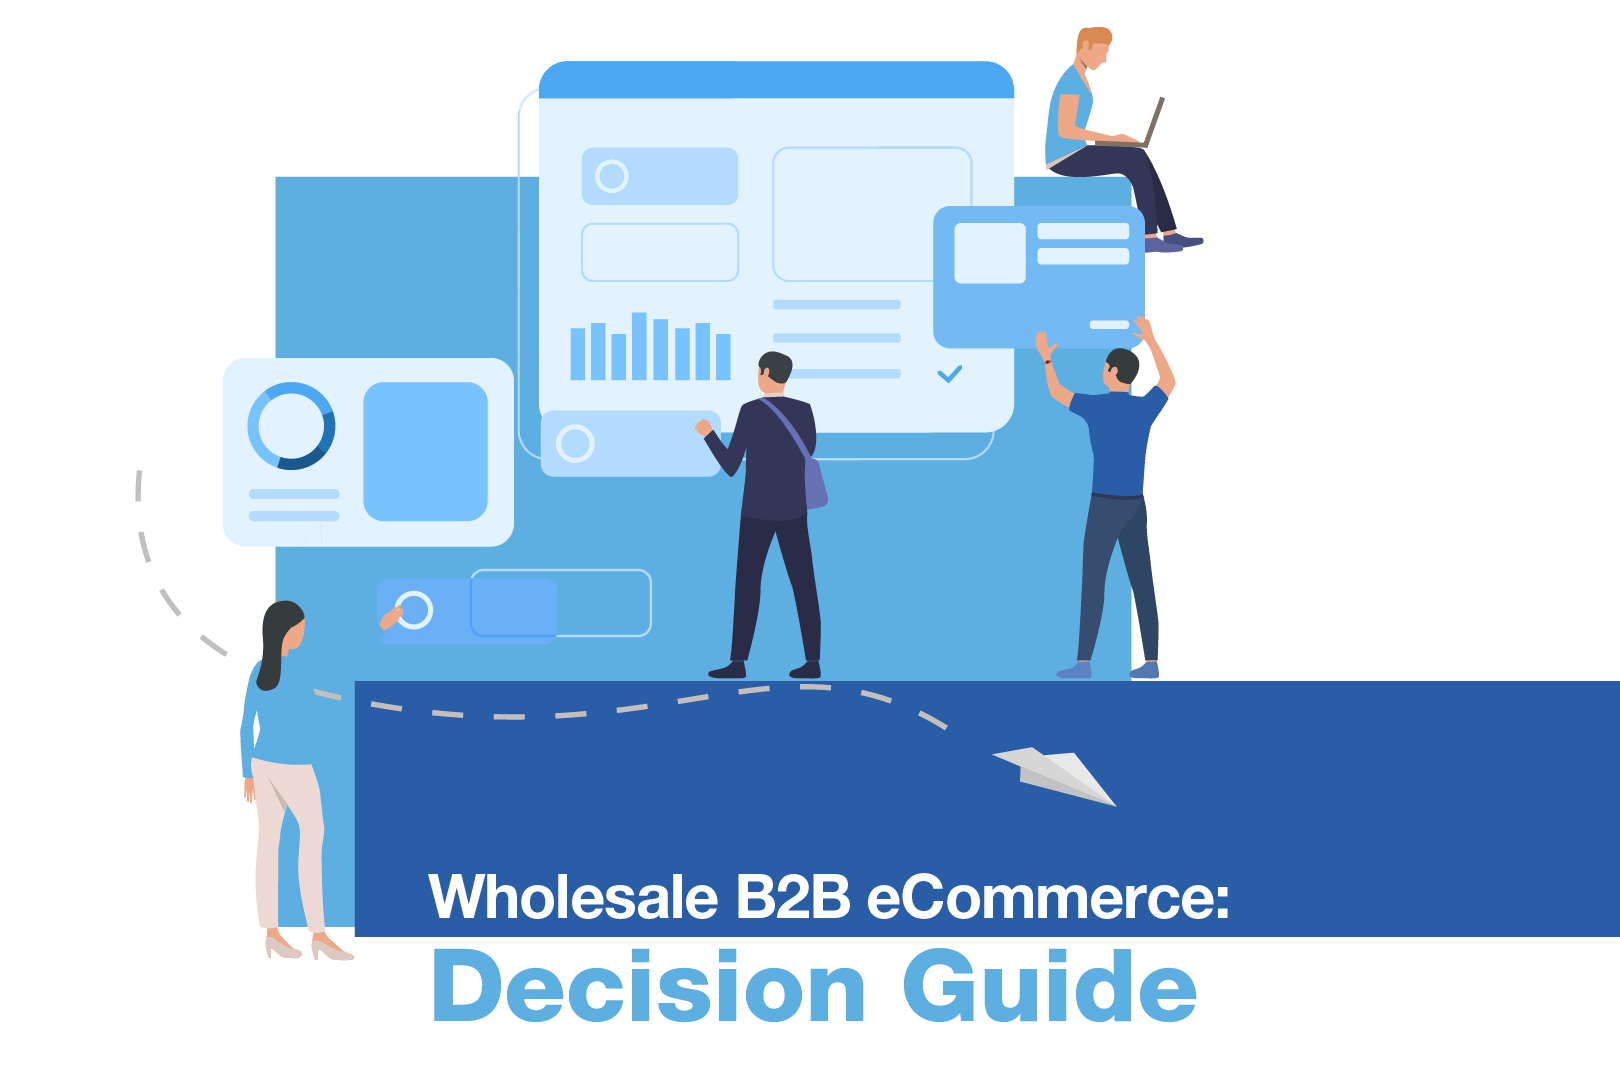 Cover of the Wholesale B2B eCommerce Decision Guide